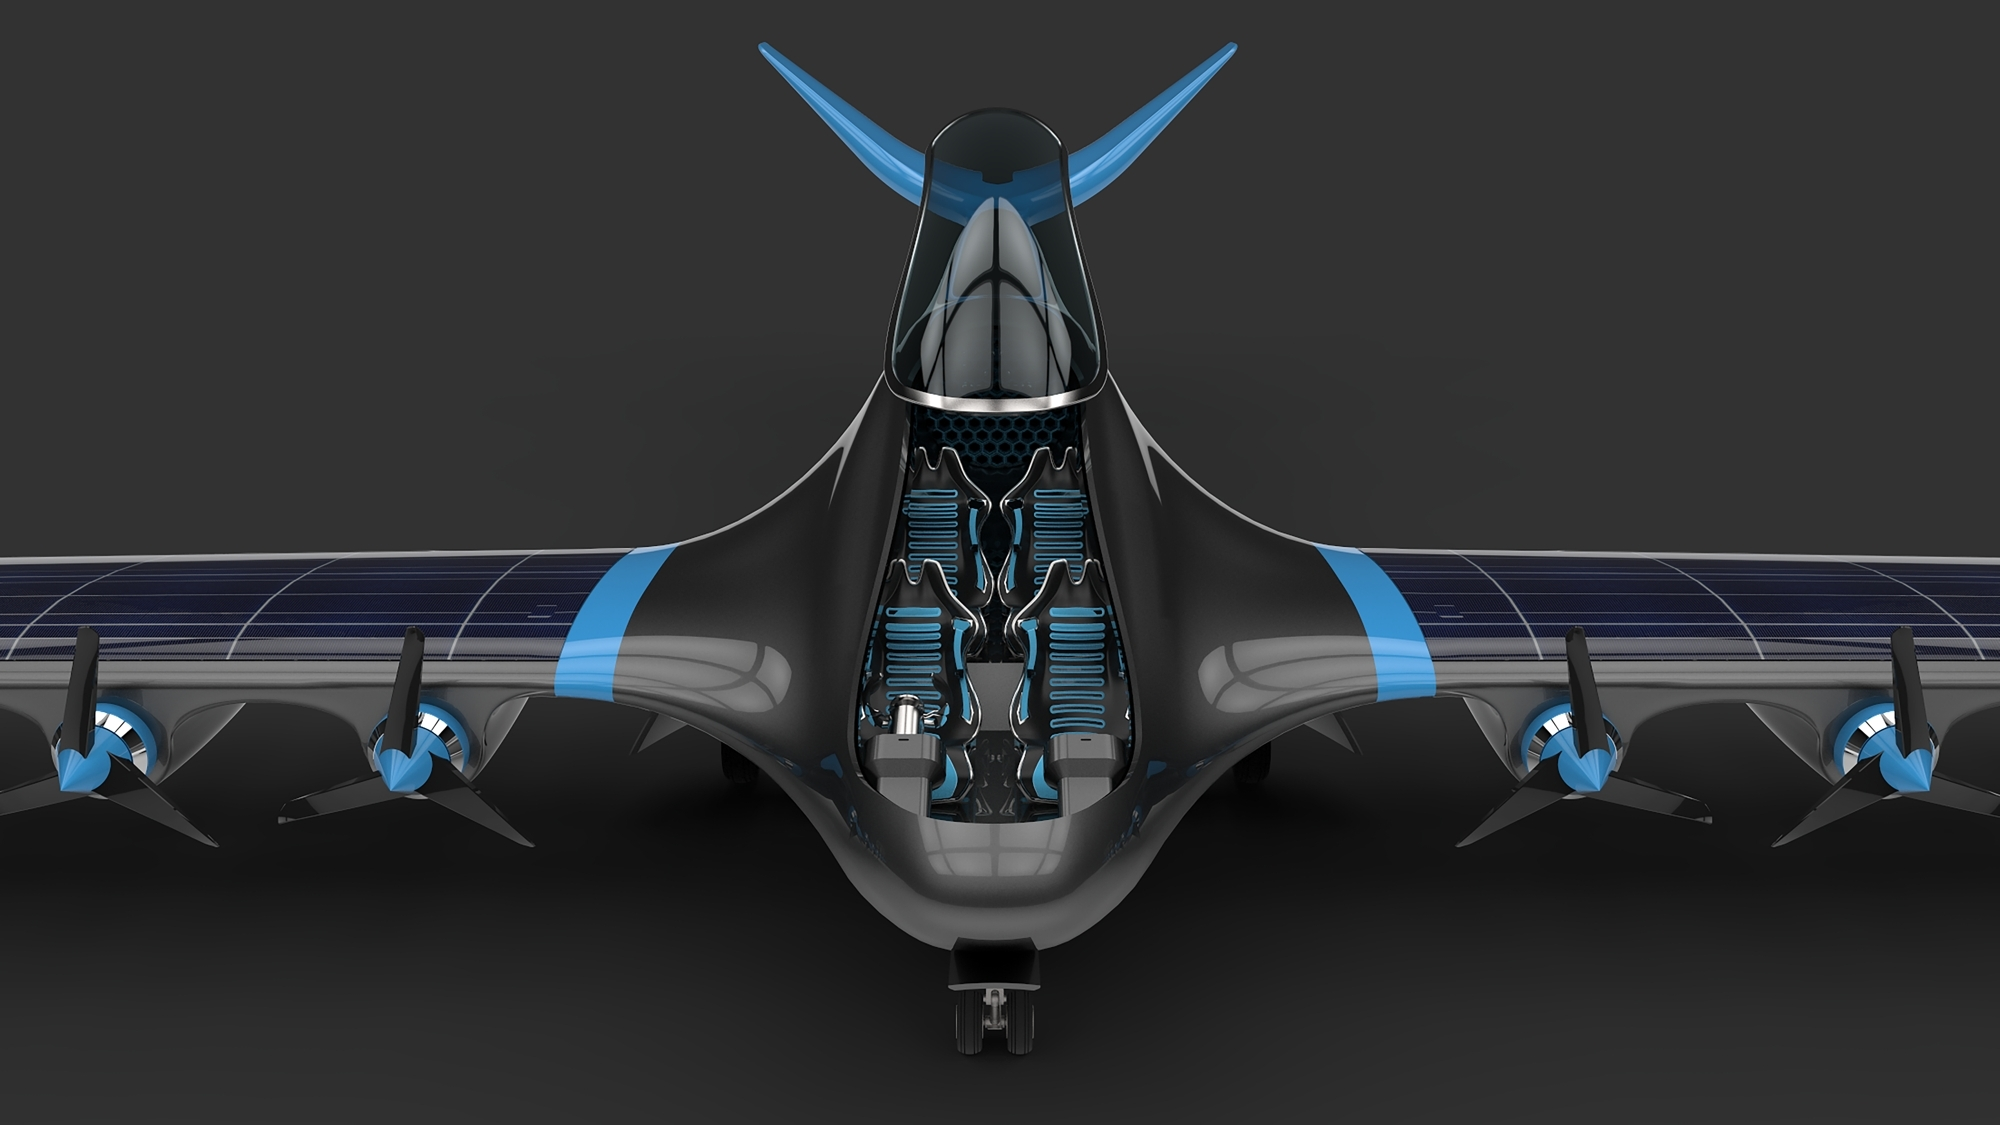 Singapore S Hes Unveils Plans For Regional Hydrogen Electric Passenger Aircraft Business Wire